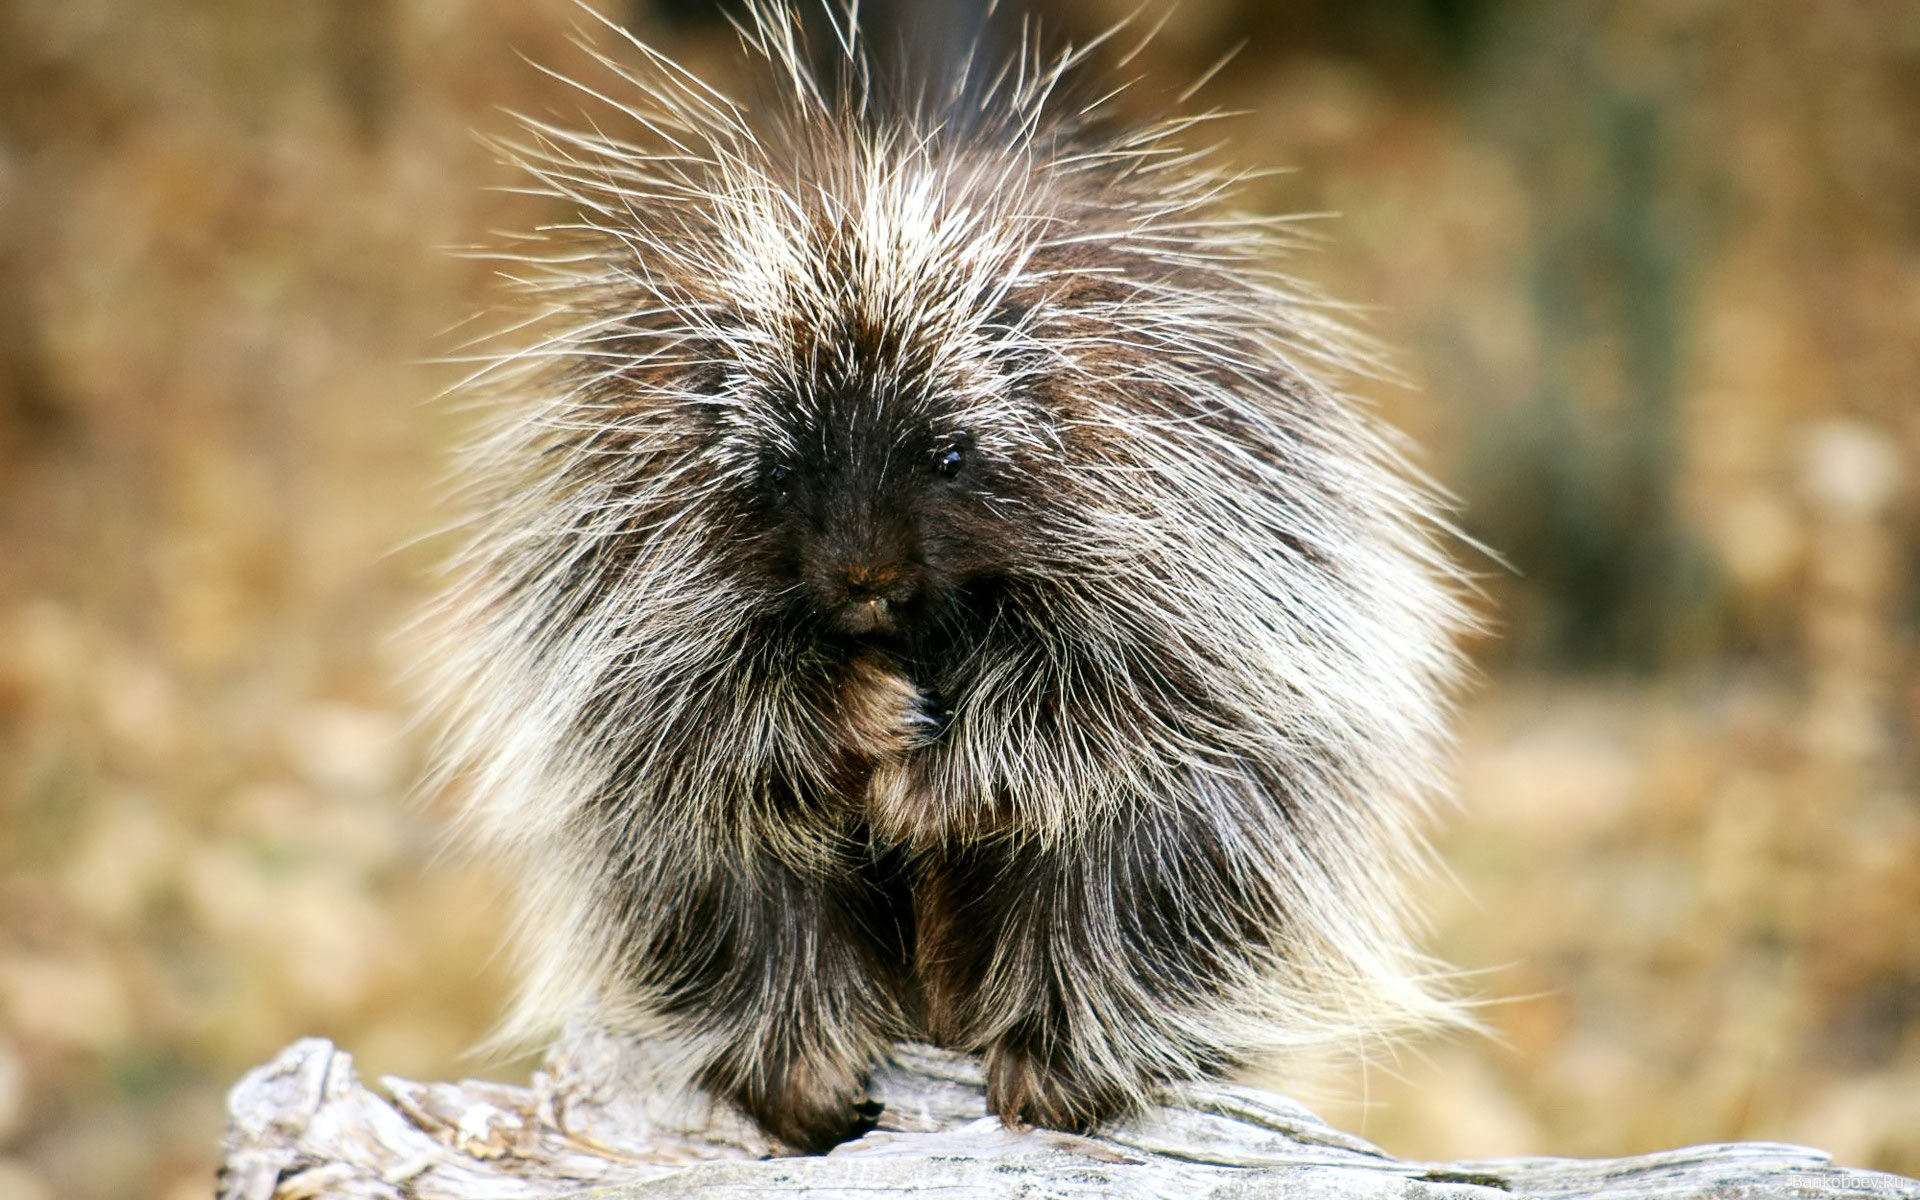 Baby Porcupine Exotic Animals hd Wallpaper High Quality 1920x1200